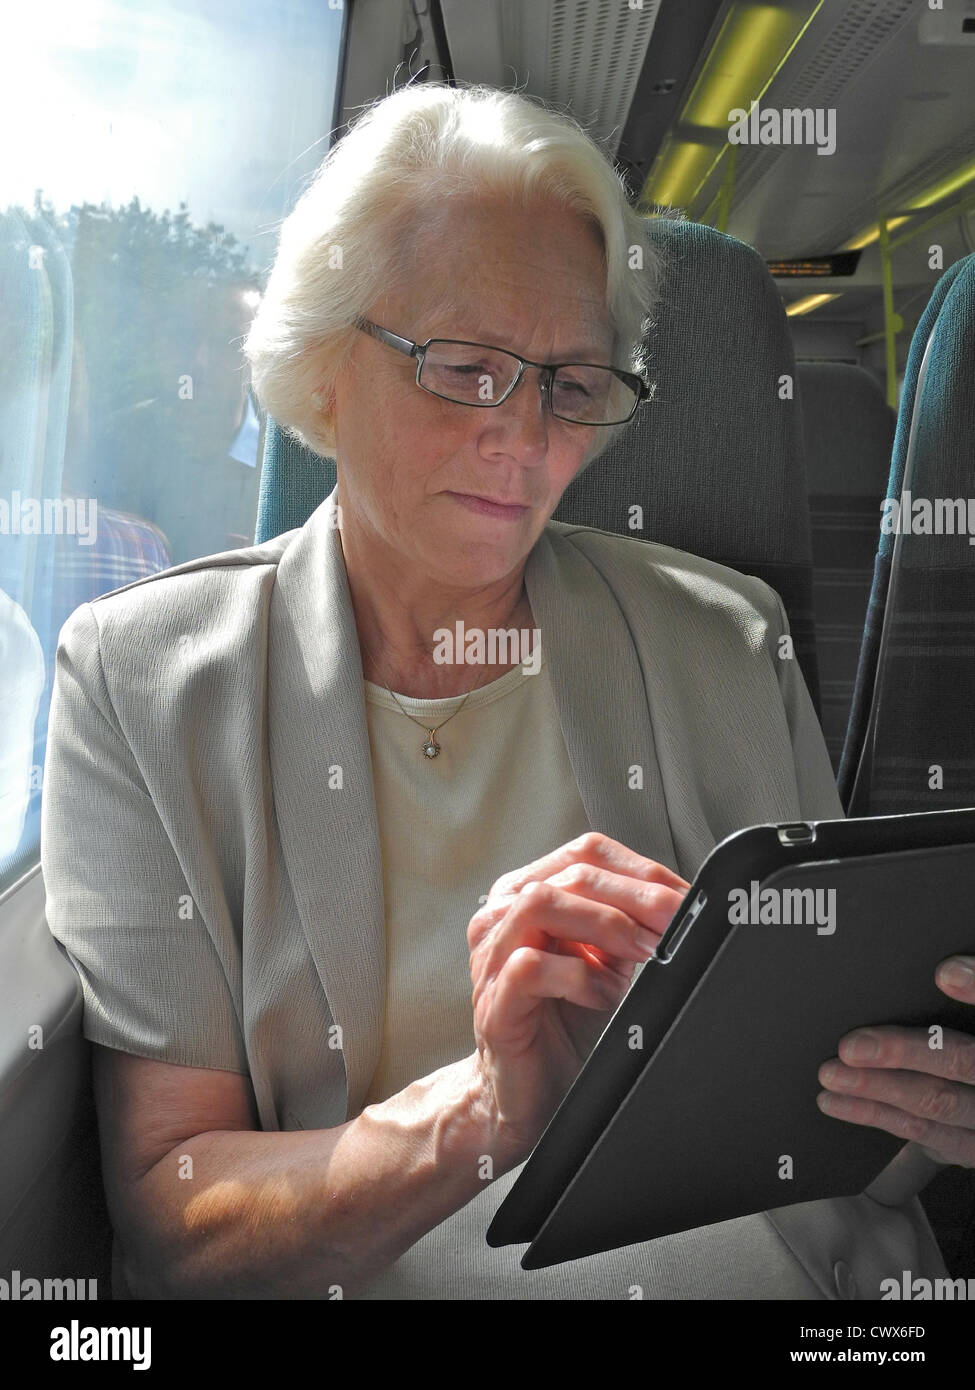 Mature woman using i-pad tablet computer while traveling. Tablet not identifiable. Stock Photo